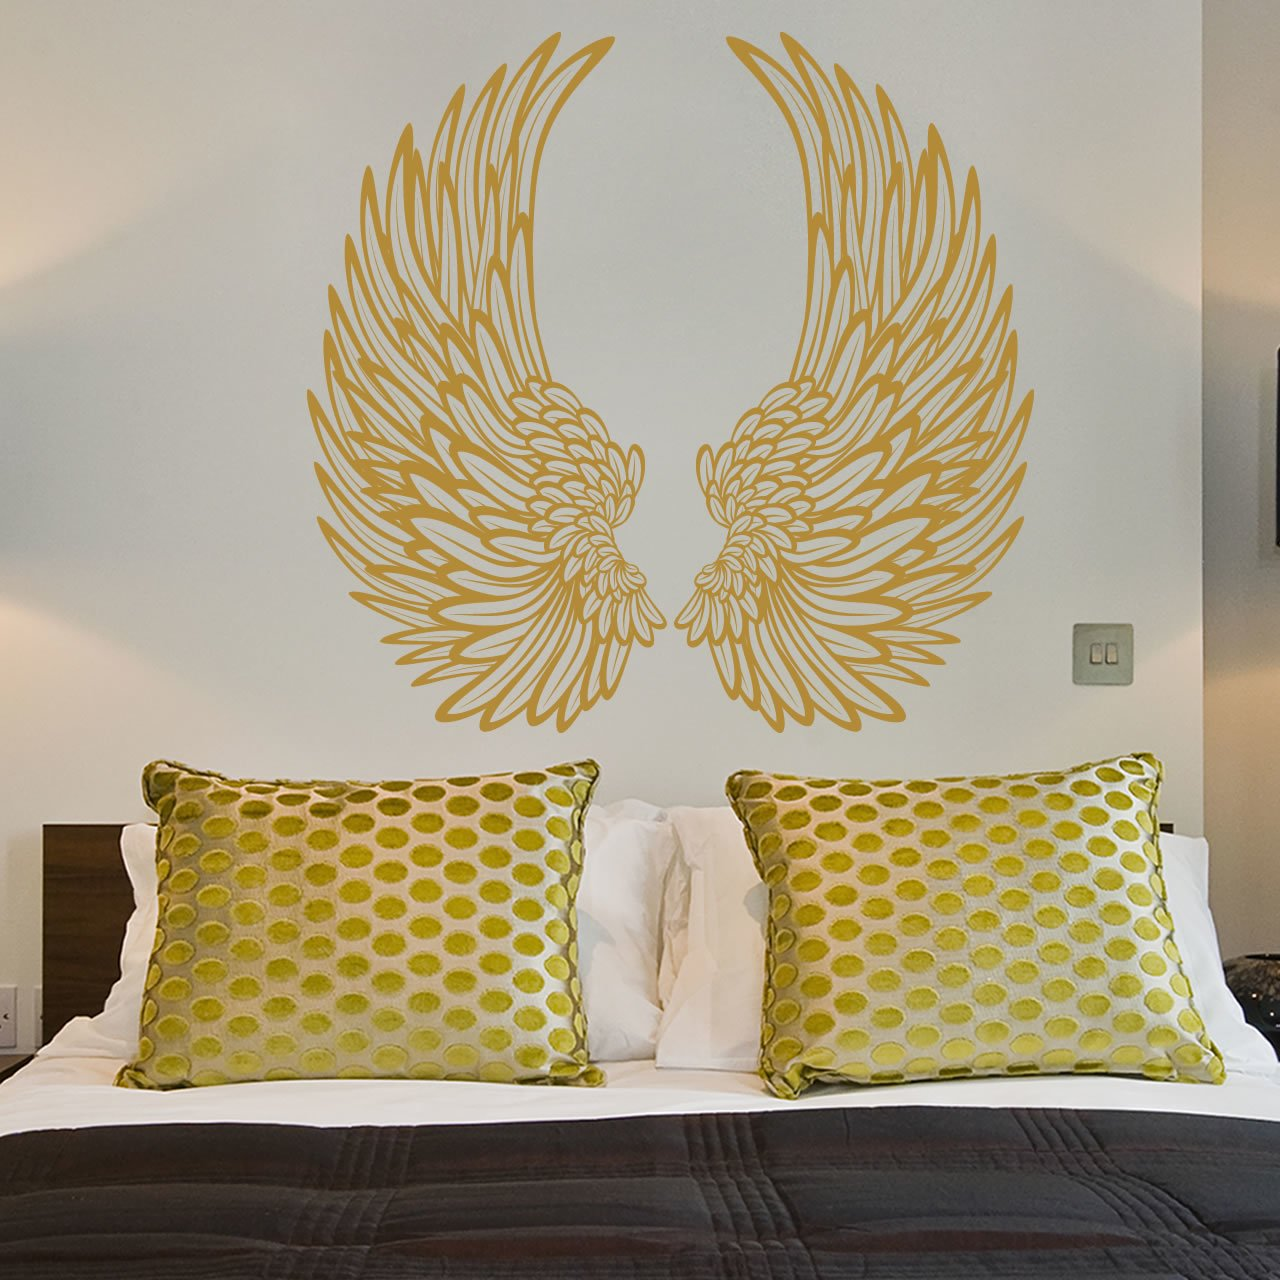 Decorative Angel Wings Wall Sticker - World of Wall Stickers